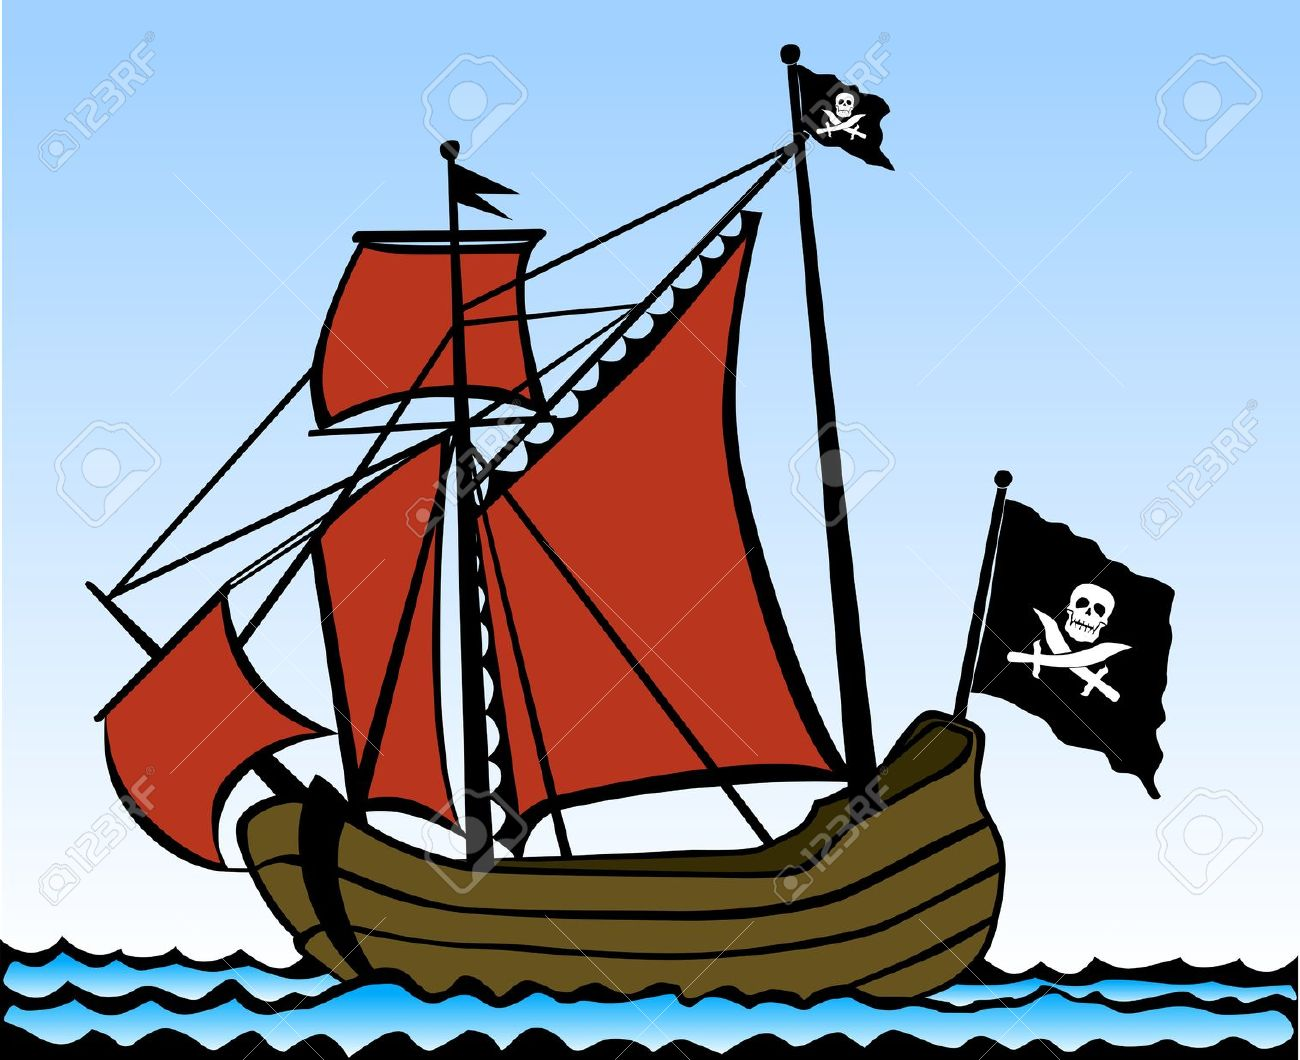 Two Masted Pirate Ship. Vector Illustration Royalty Free Cliparts.